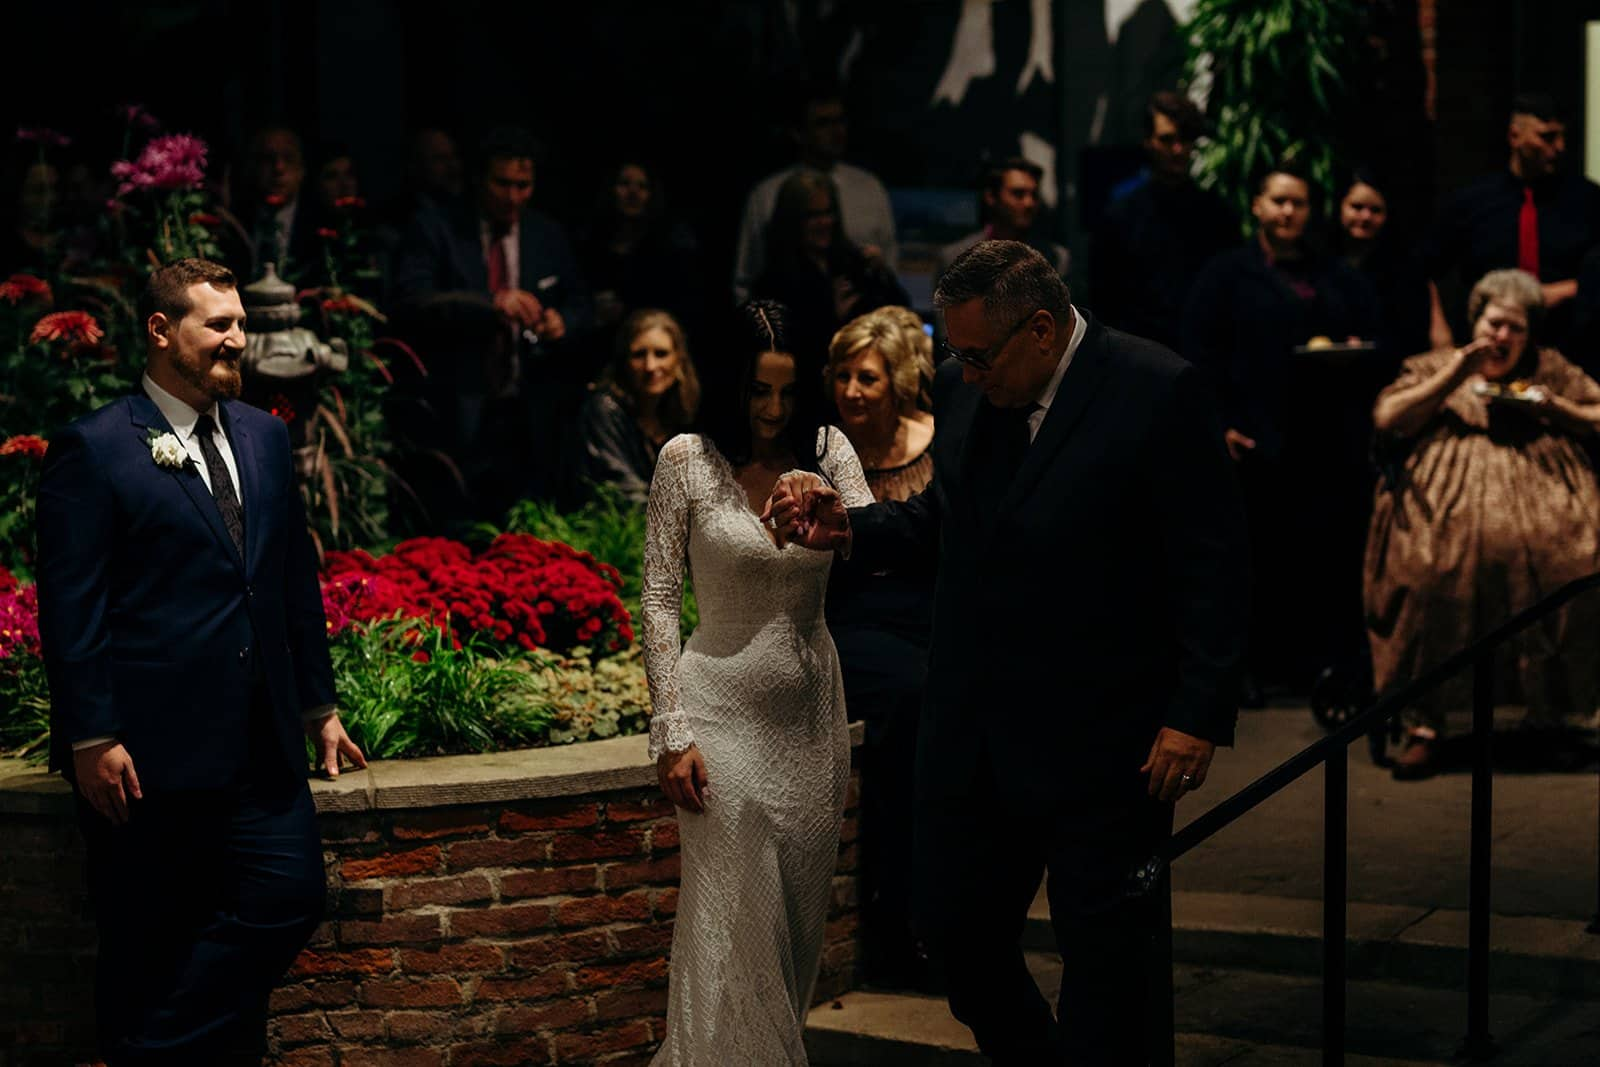 Father leads bride to the dance floor